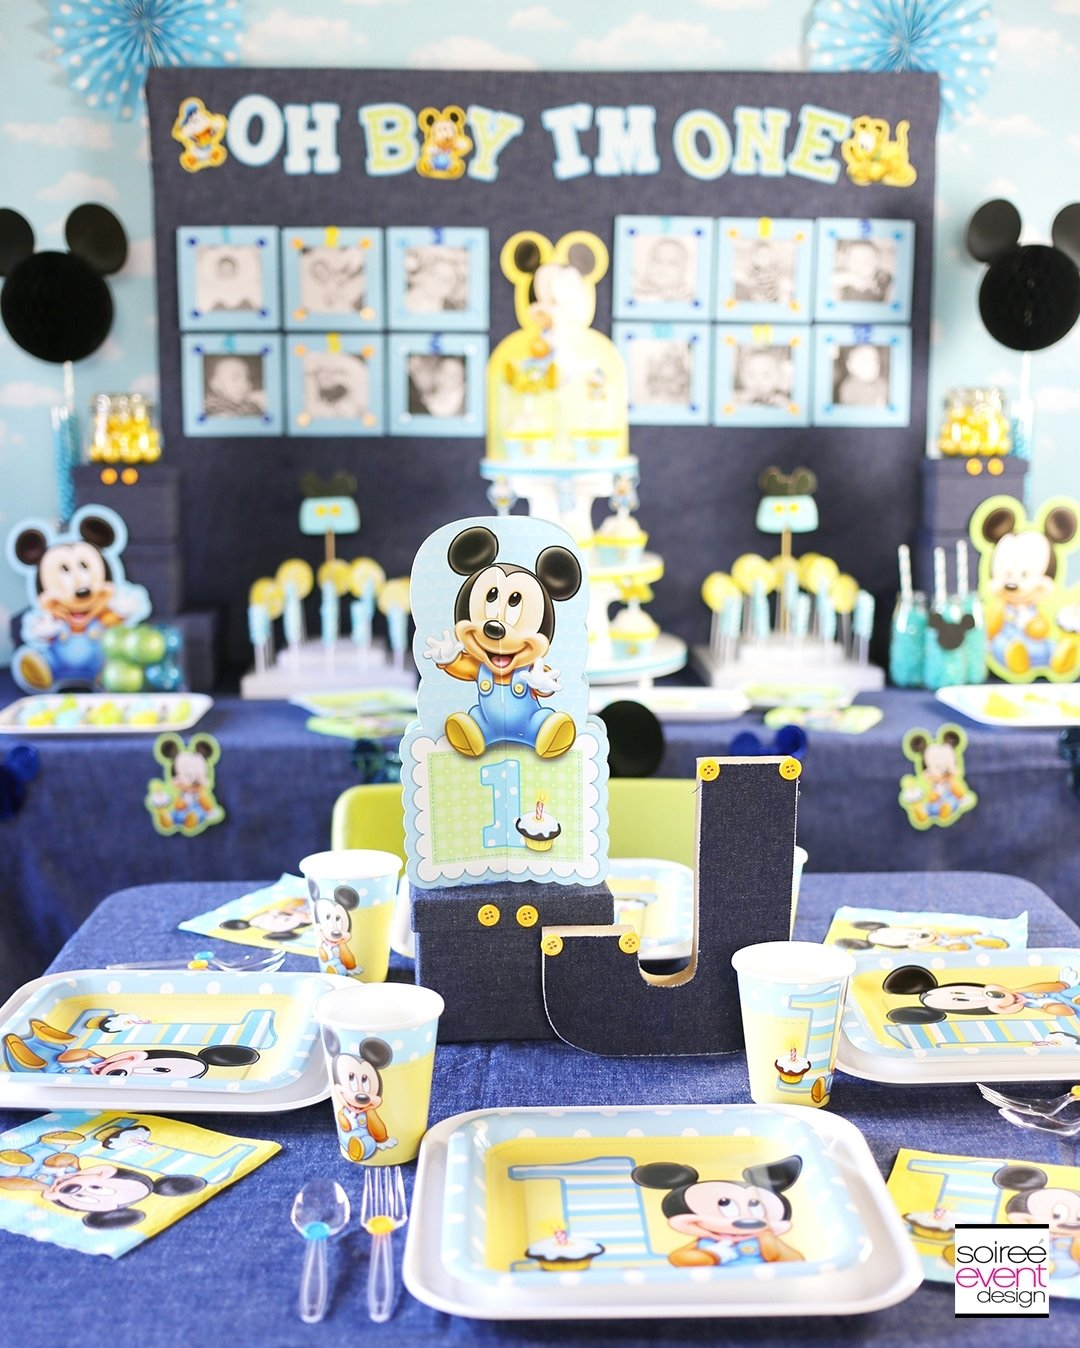 10 Ideal One Year Old Birthday Party Ideas For Boys Themes